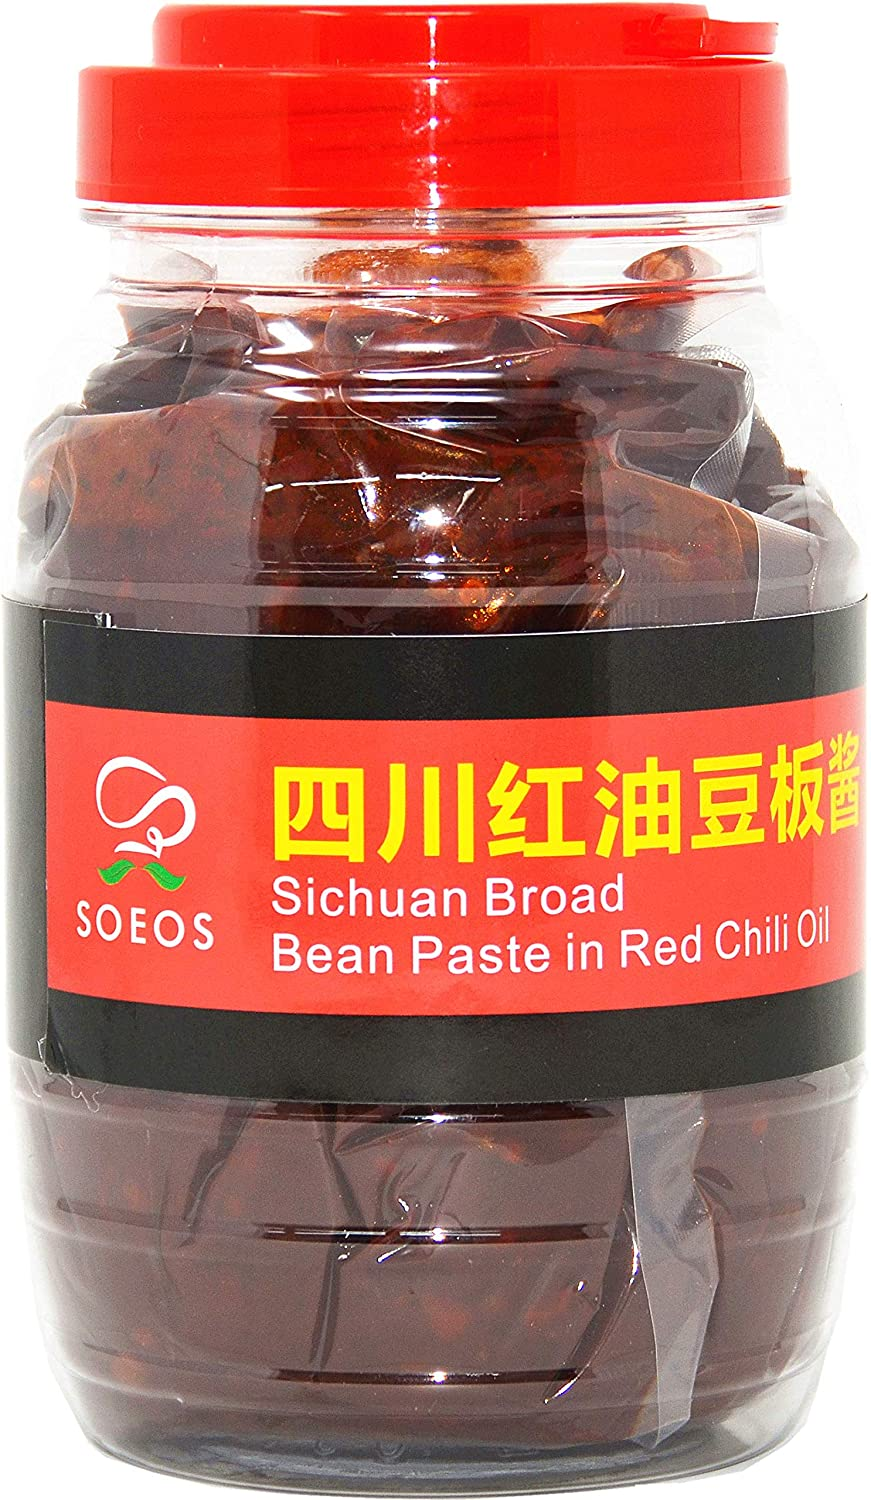 SOEOS Sichuan Pixian Broad Bean Paste with Chili Oil in a clear bottle